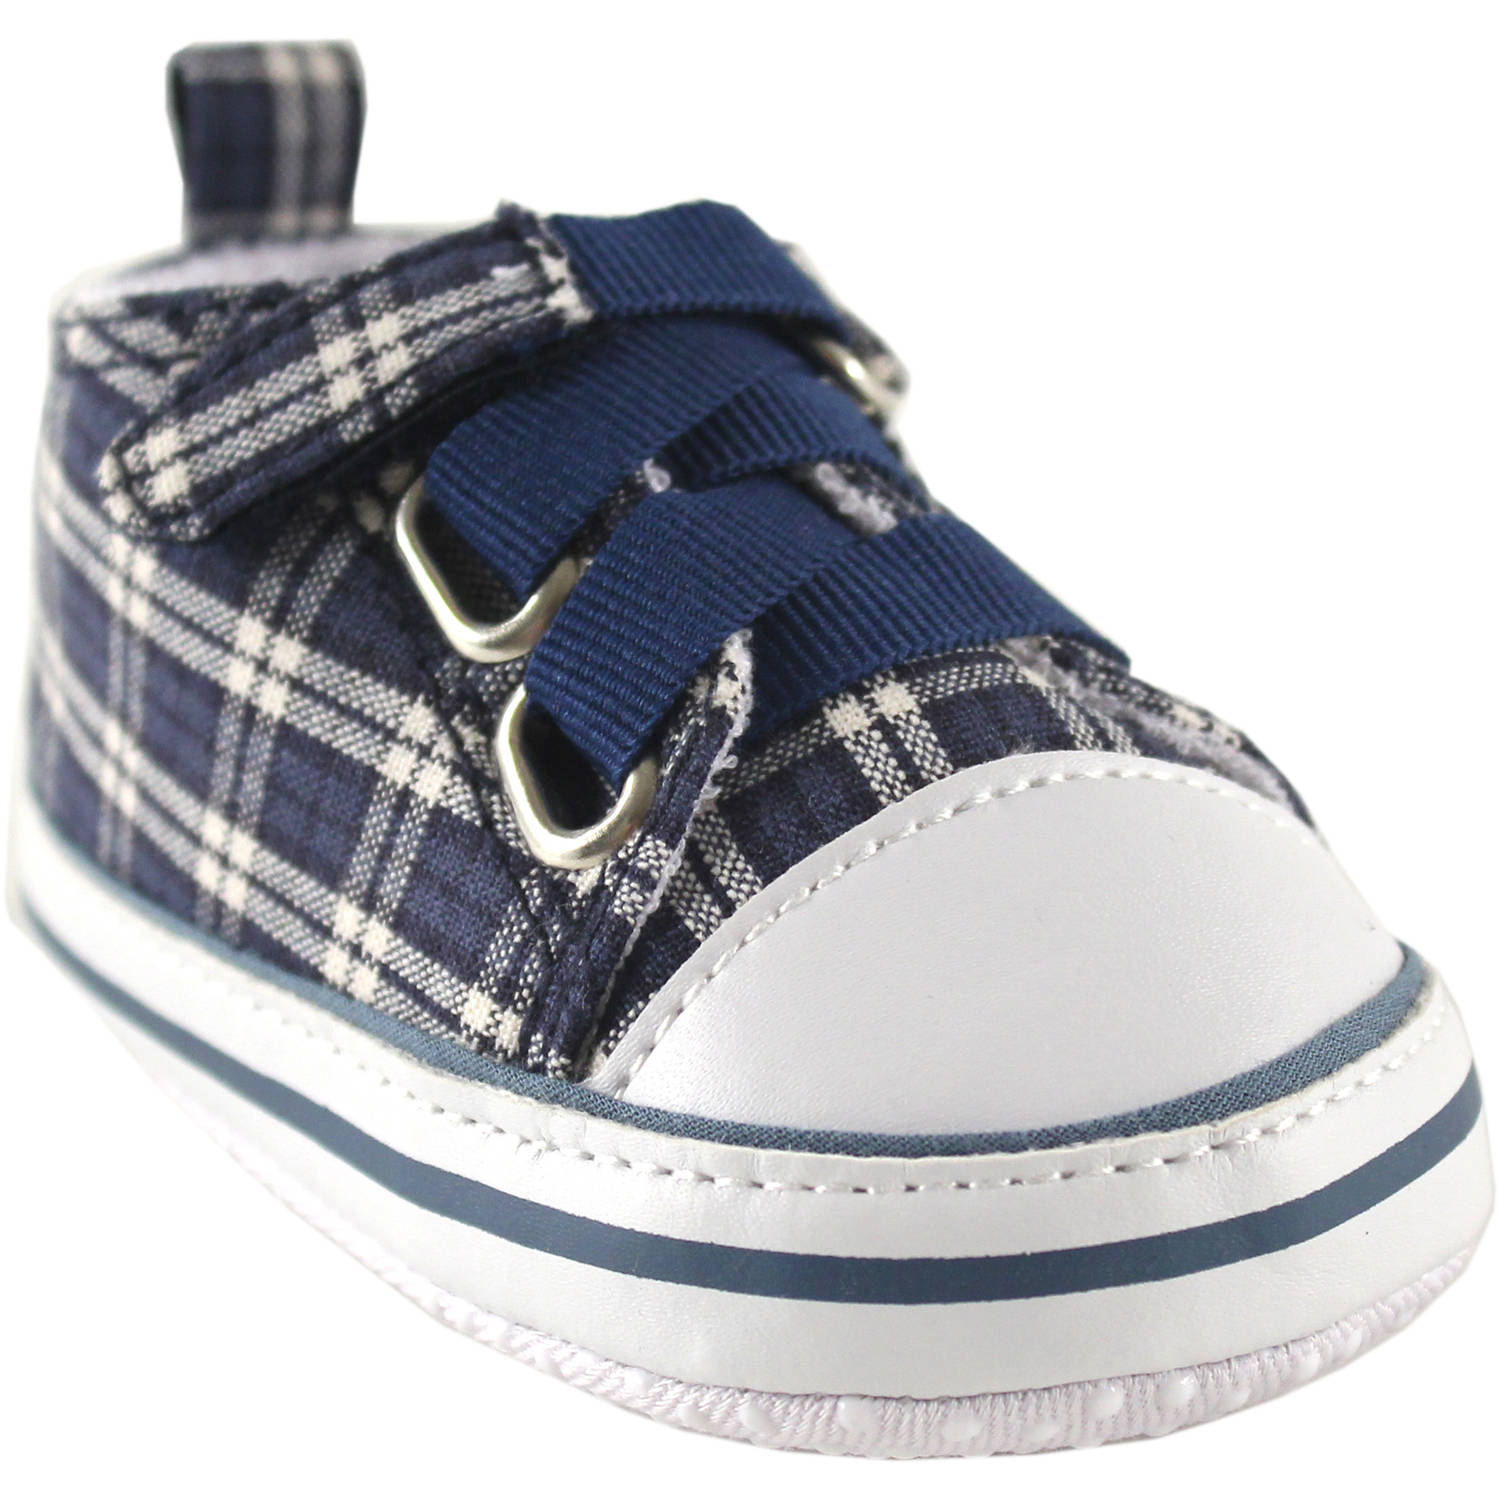 Luvable Friends Newborn Baby Boy Plaid Sneakers